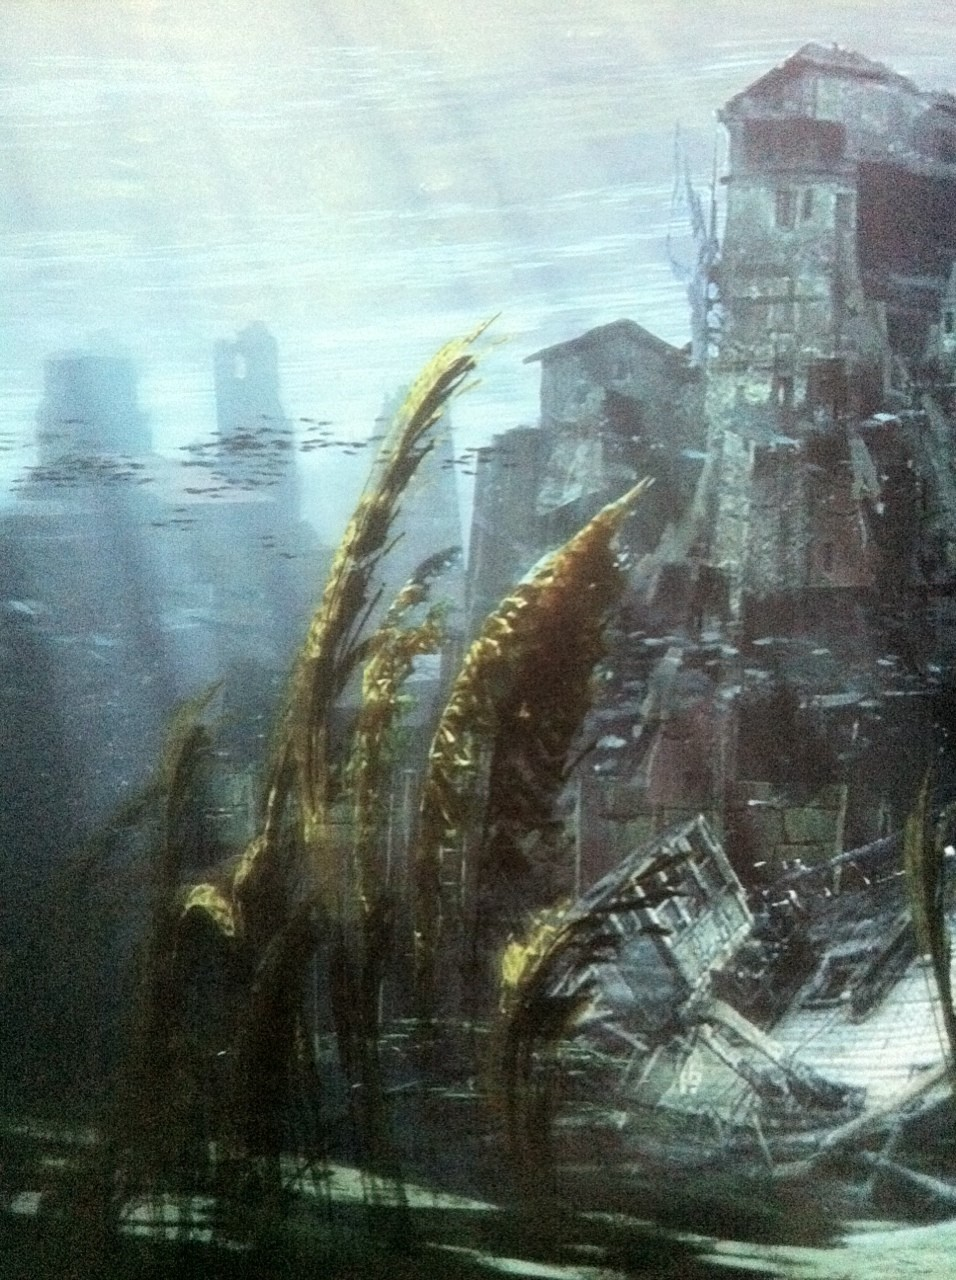 Uncharted 4 concept art shows a glimpse of in-game ...